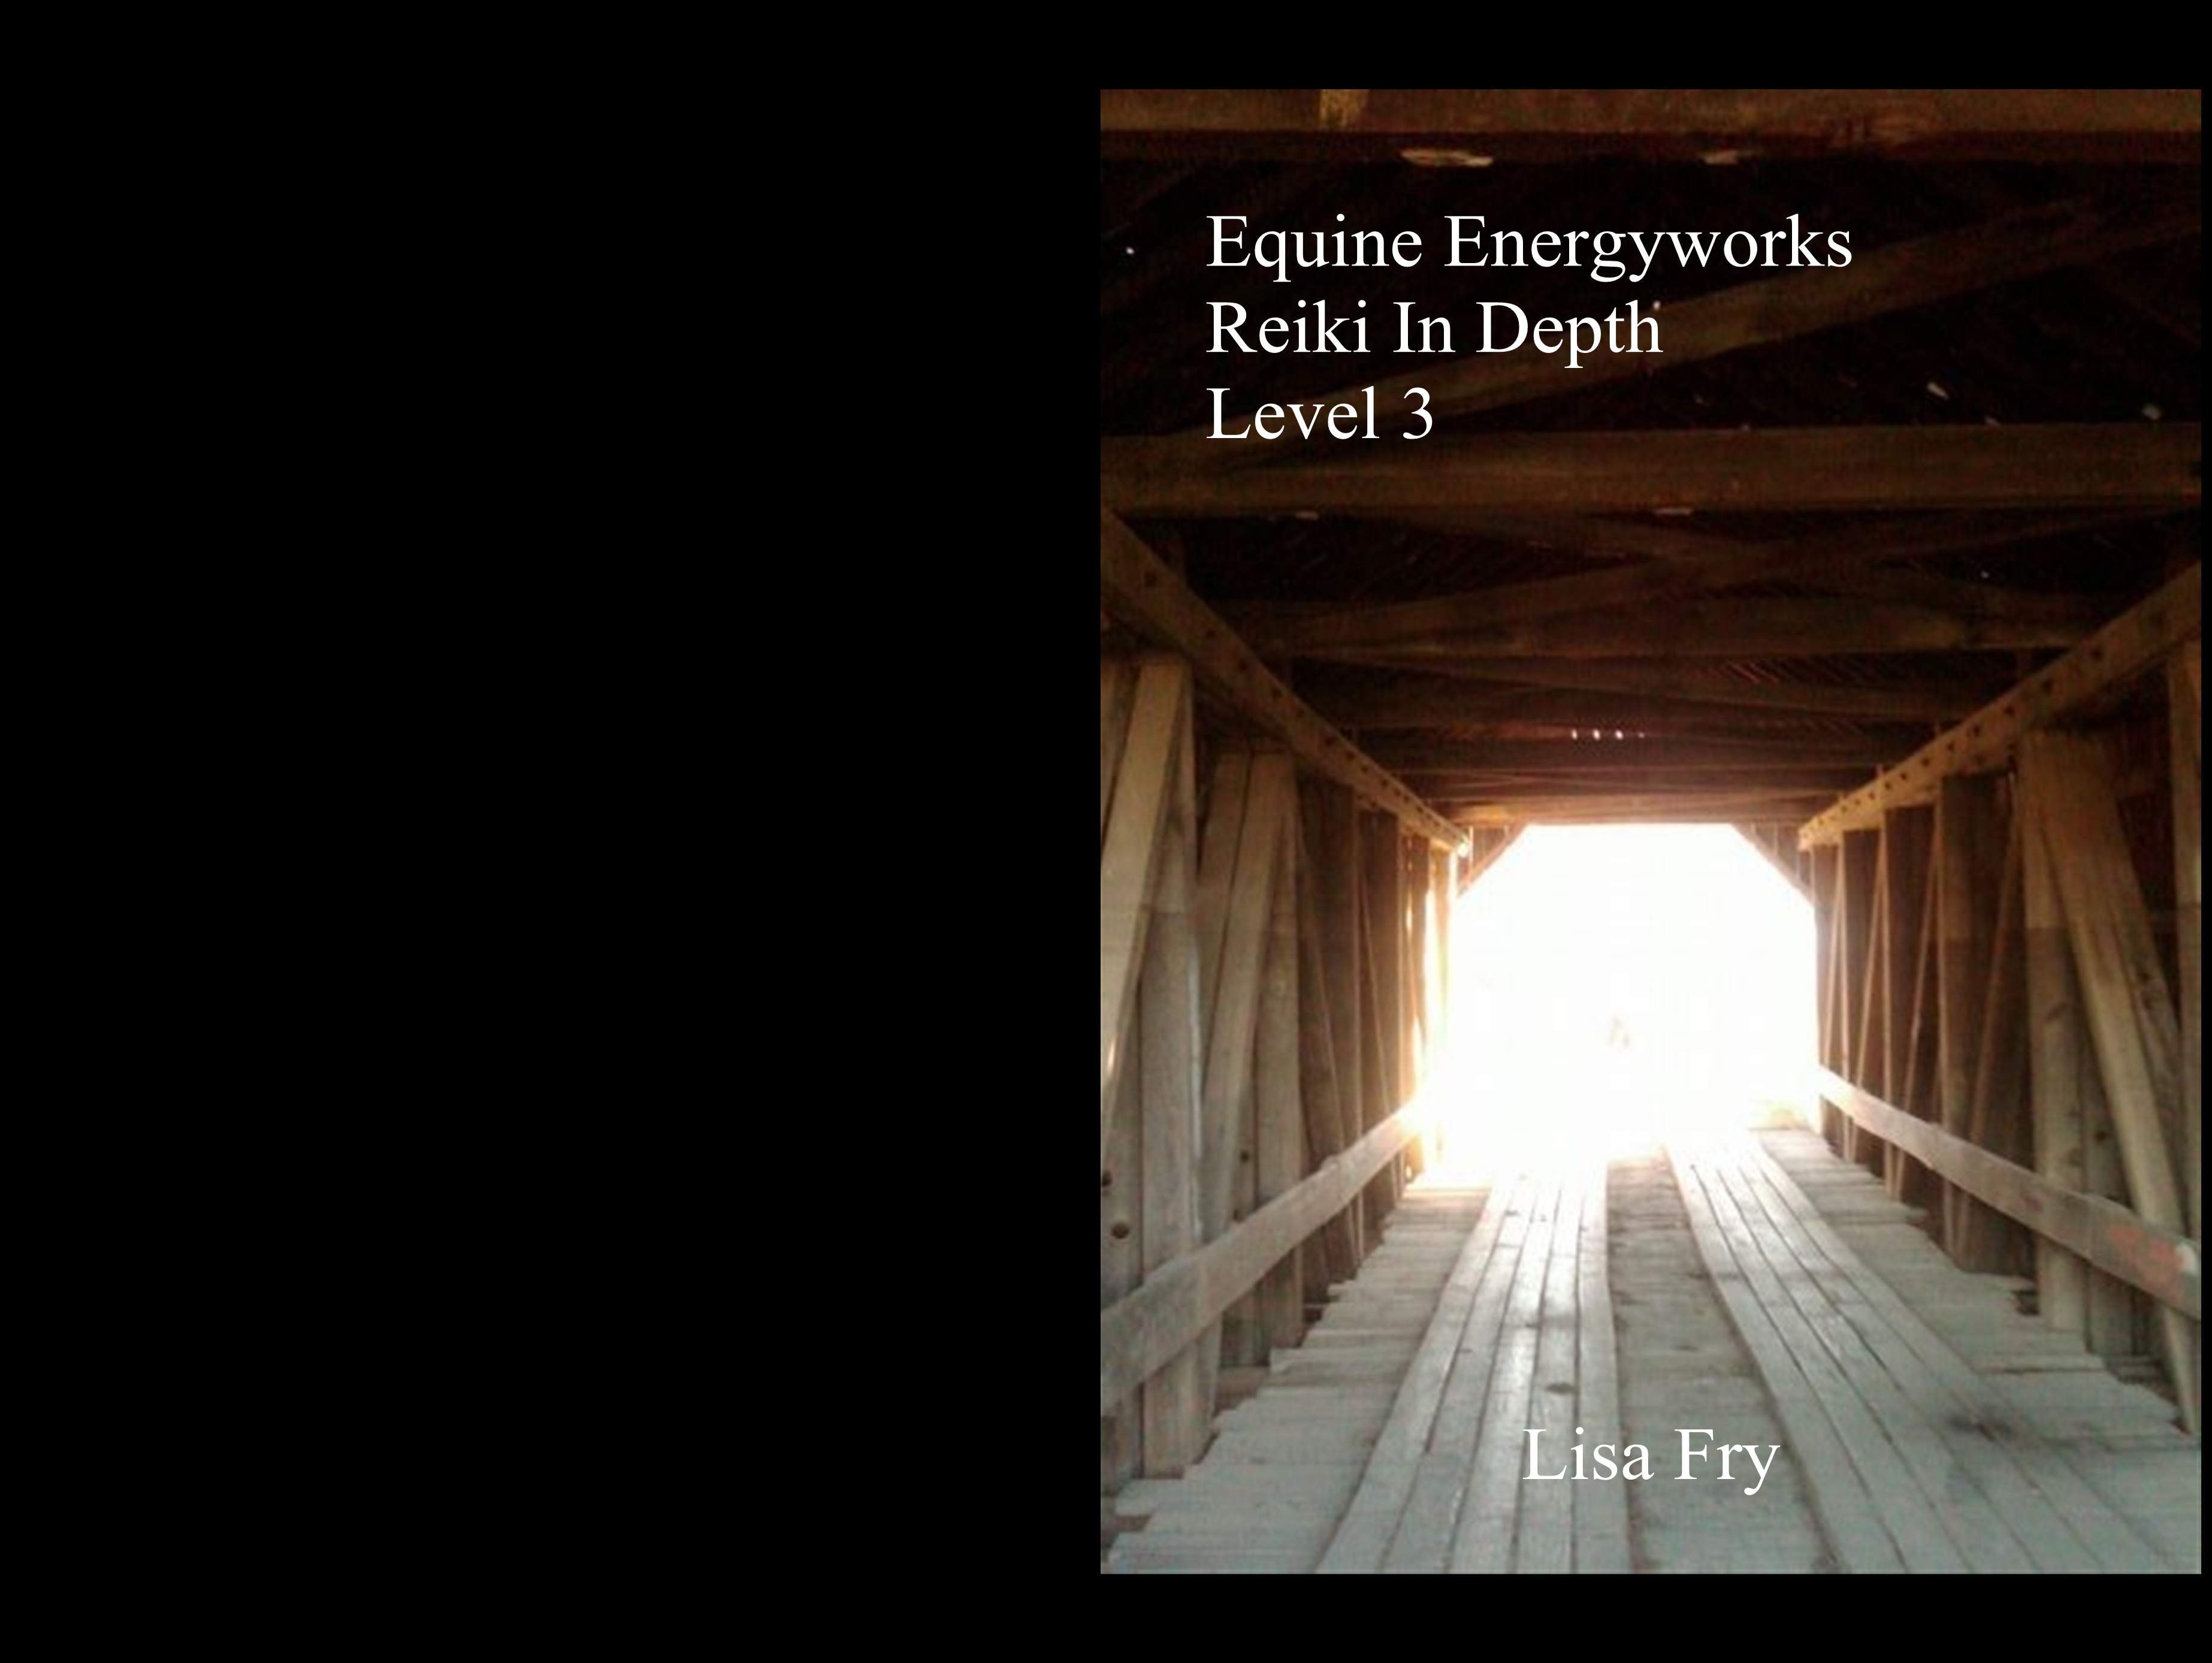 Equine Energyworks Reiki In Depth Level 3 cover image